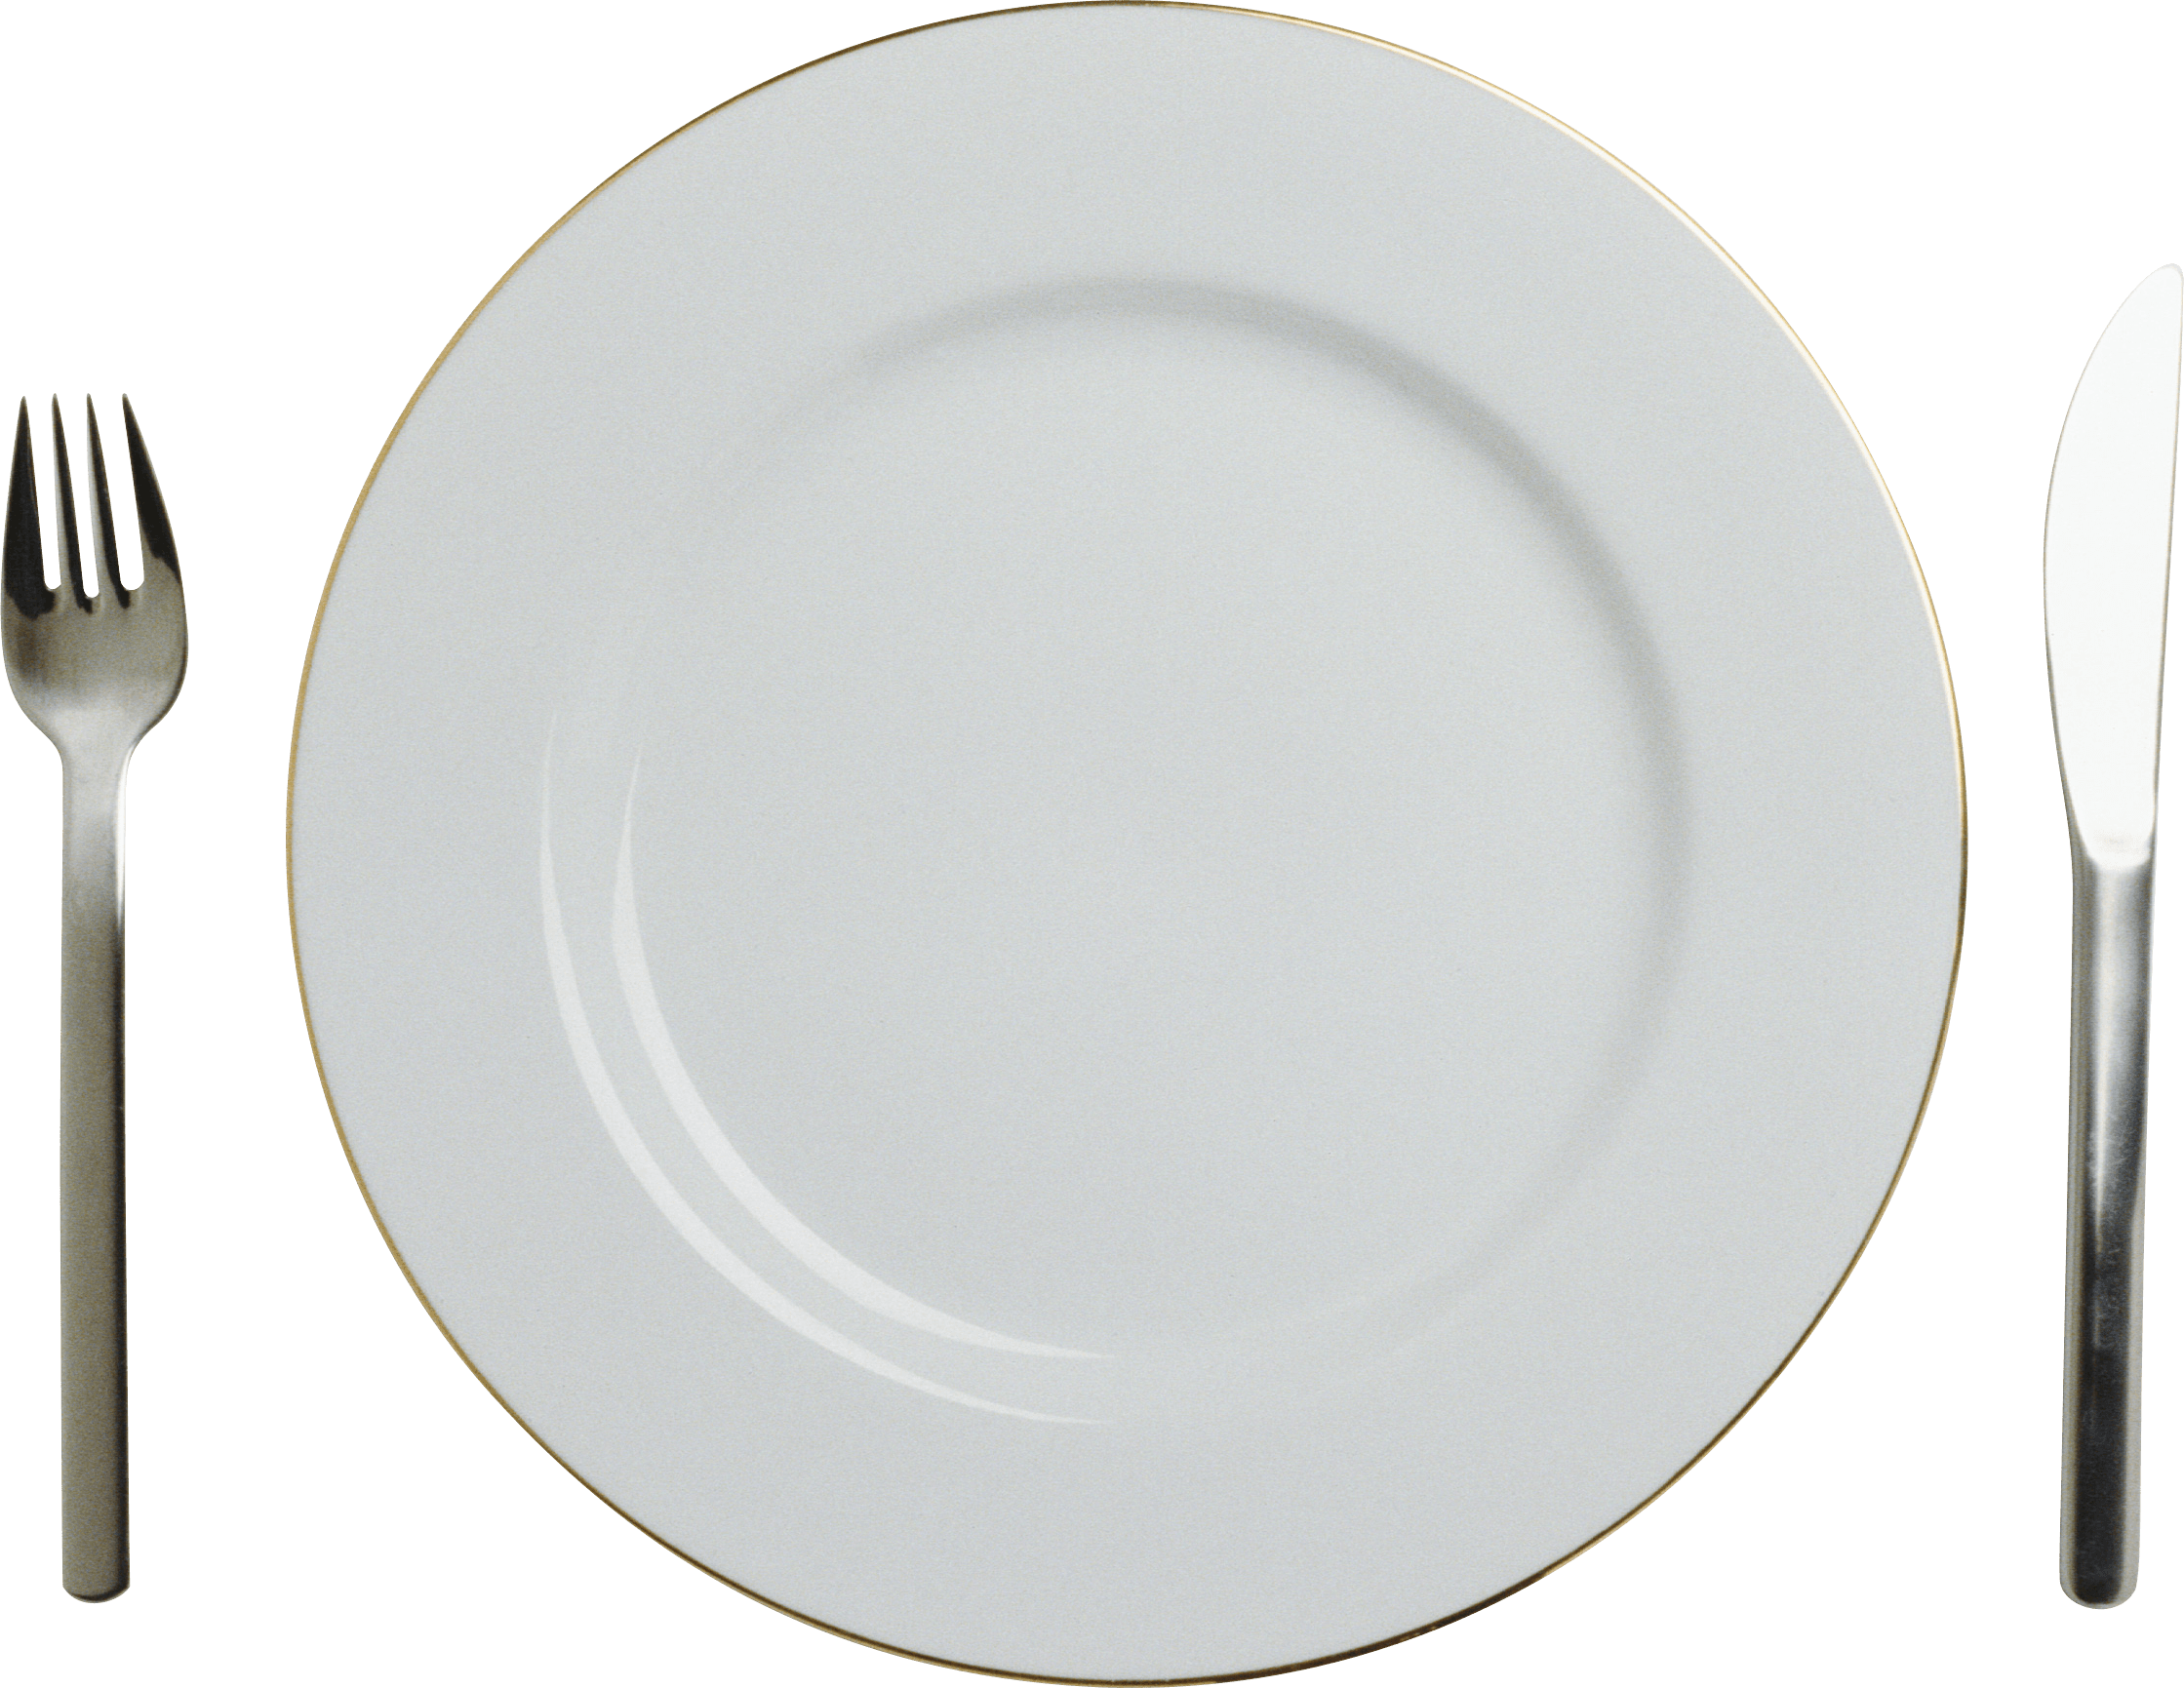 Plate Png Image PNG Image